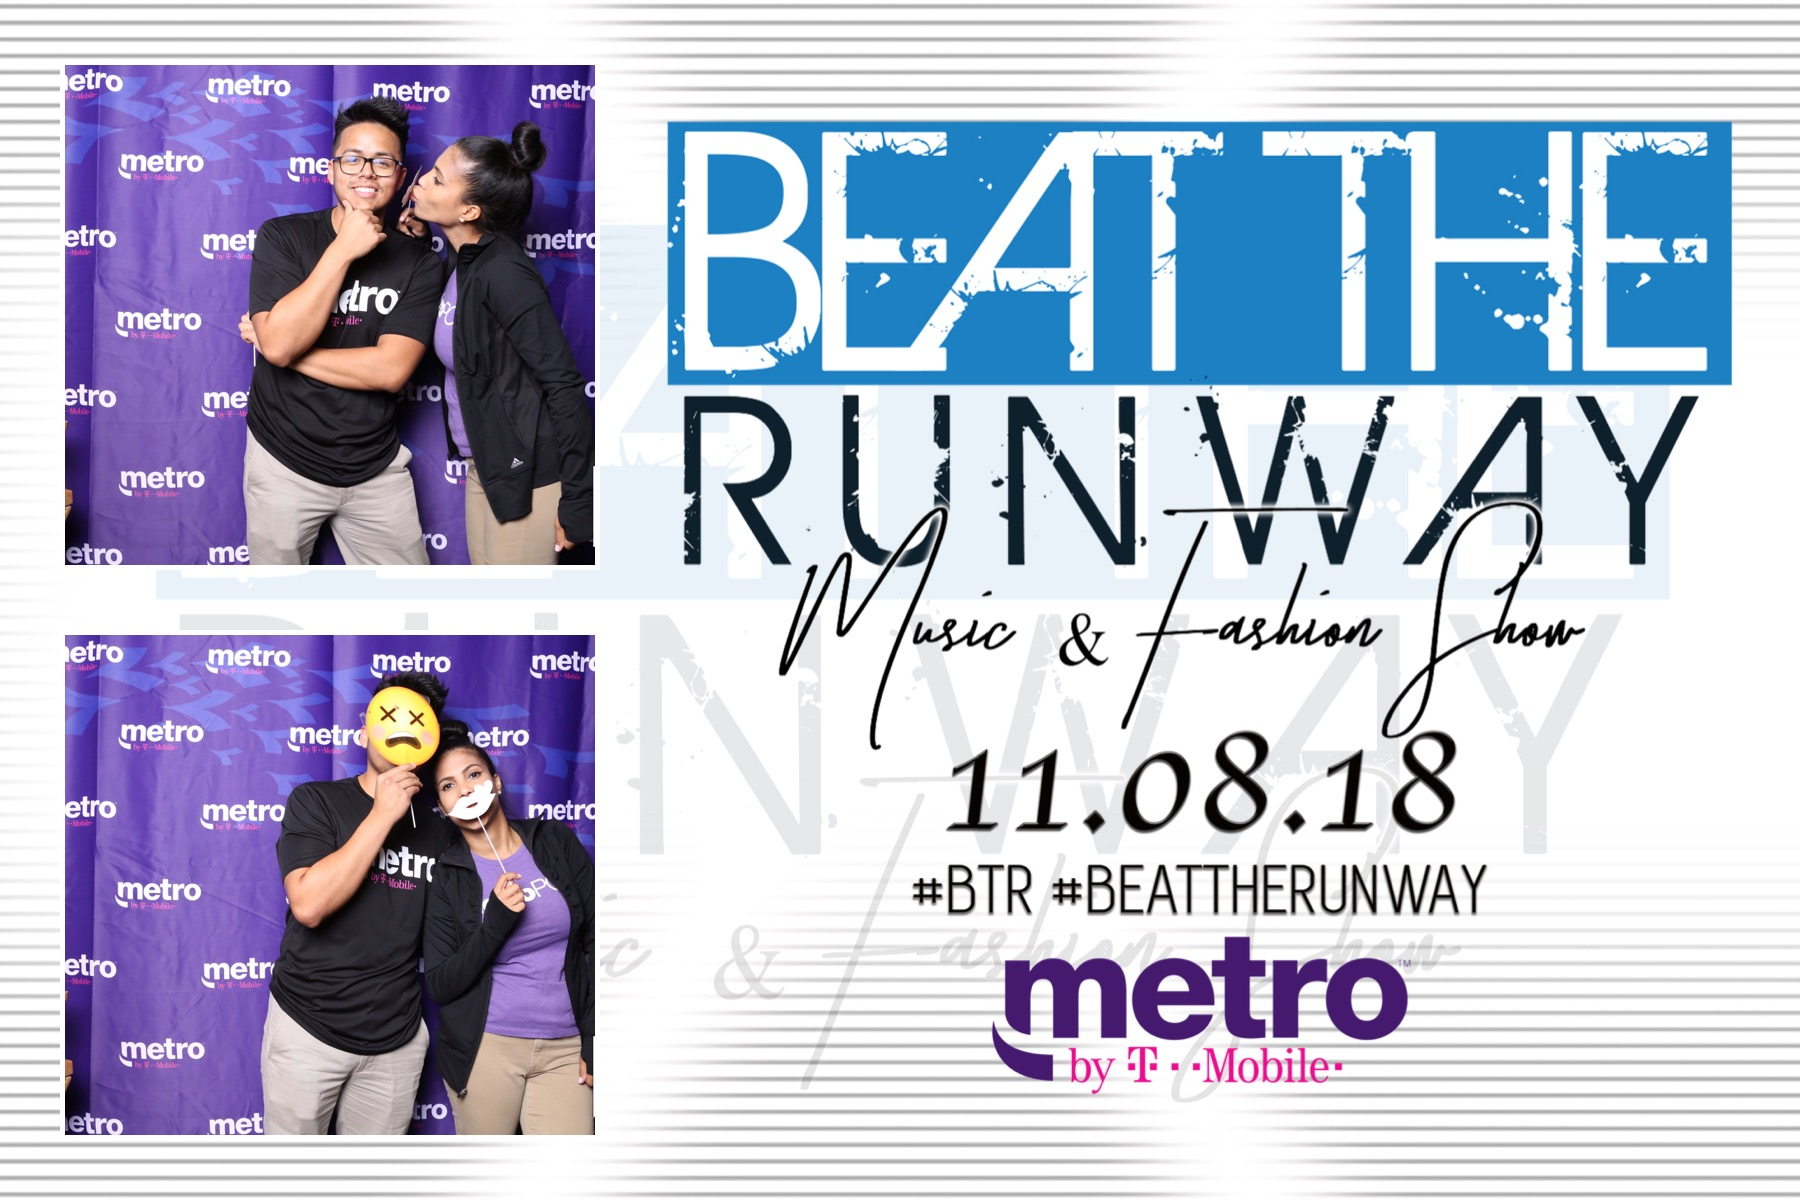 Booth Chamber Photo Booth Beat the Runway Antoine Hart 20181108_7 (1).jpeg